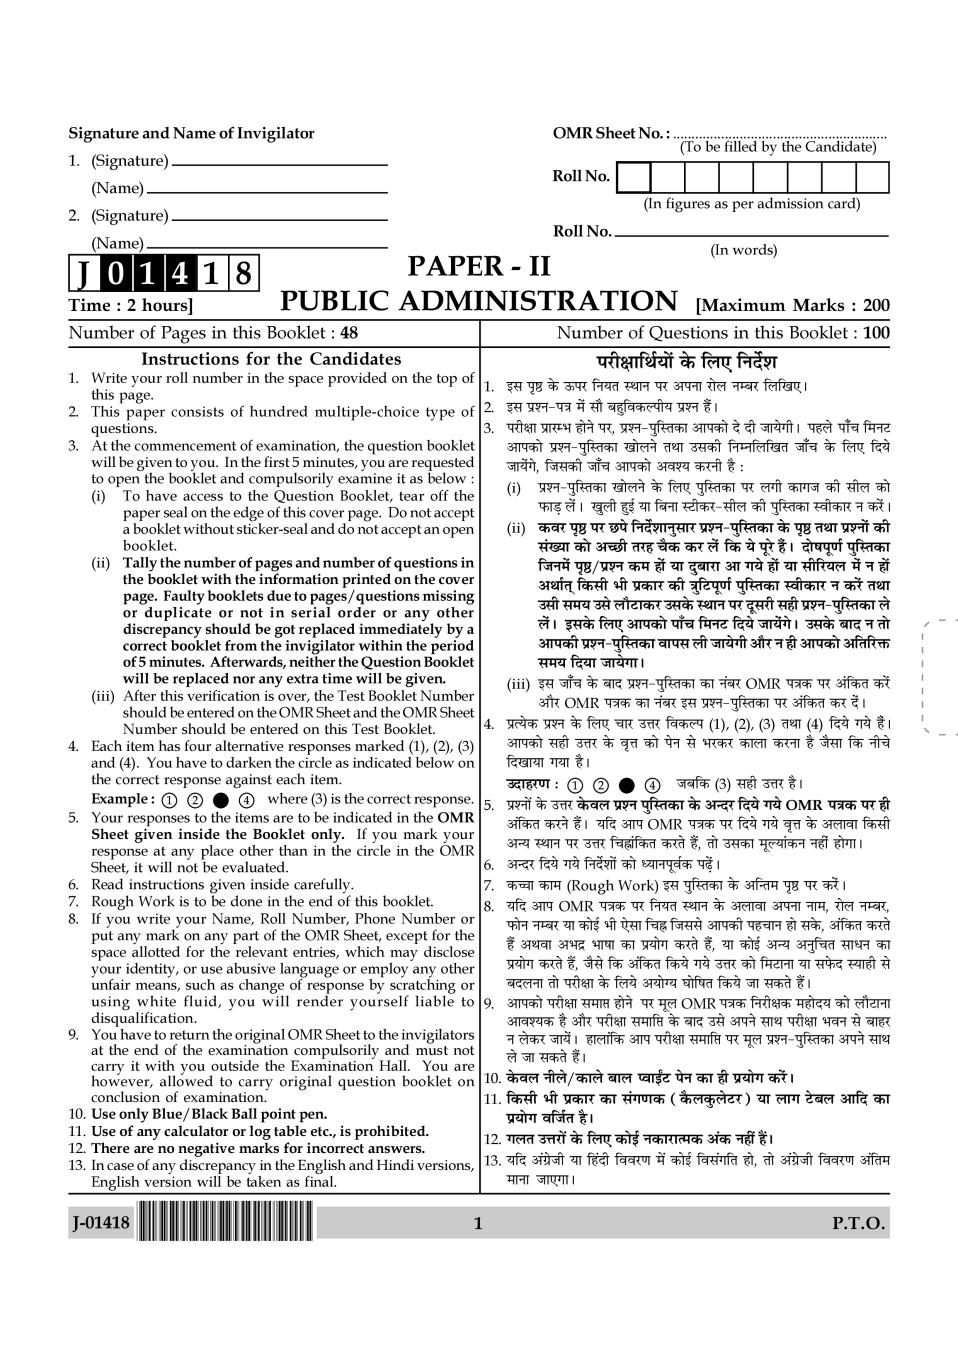 UGC NET Public Administration Question Paper 2018 - Page 1